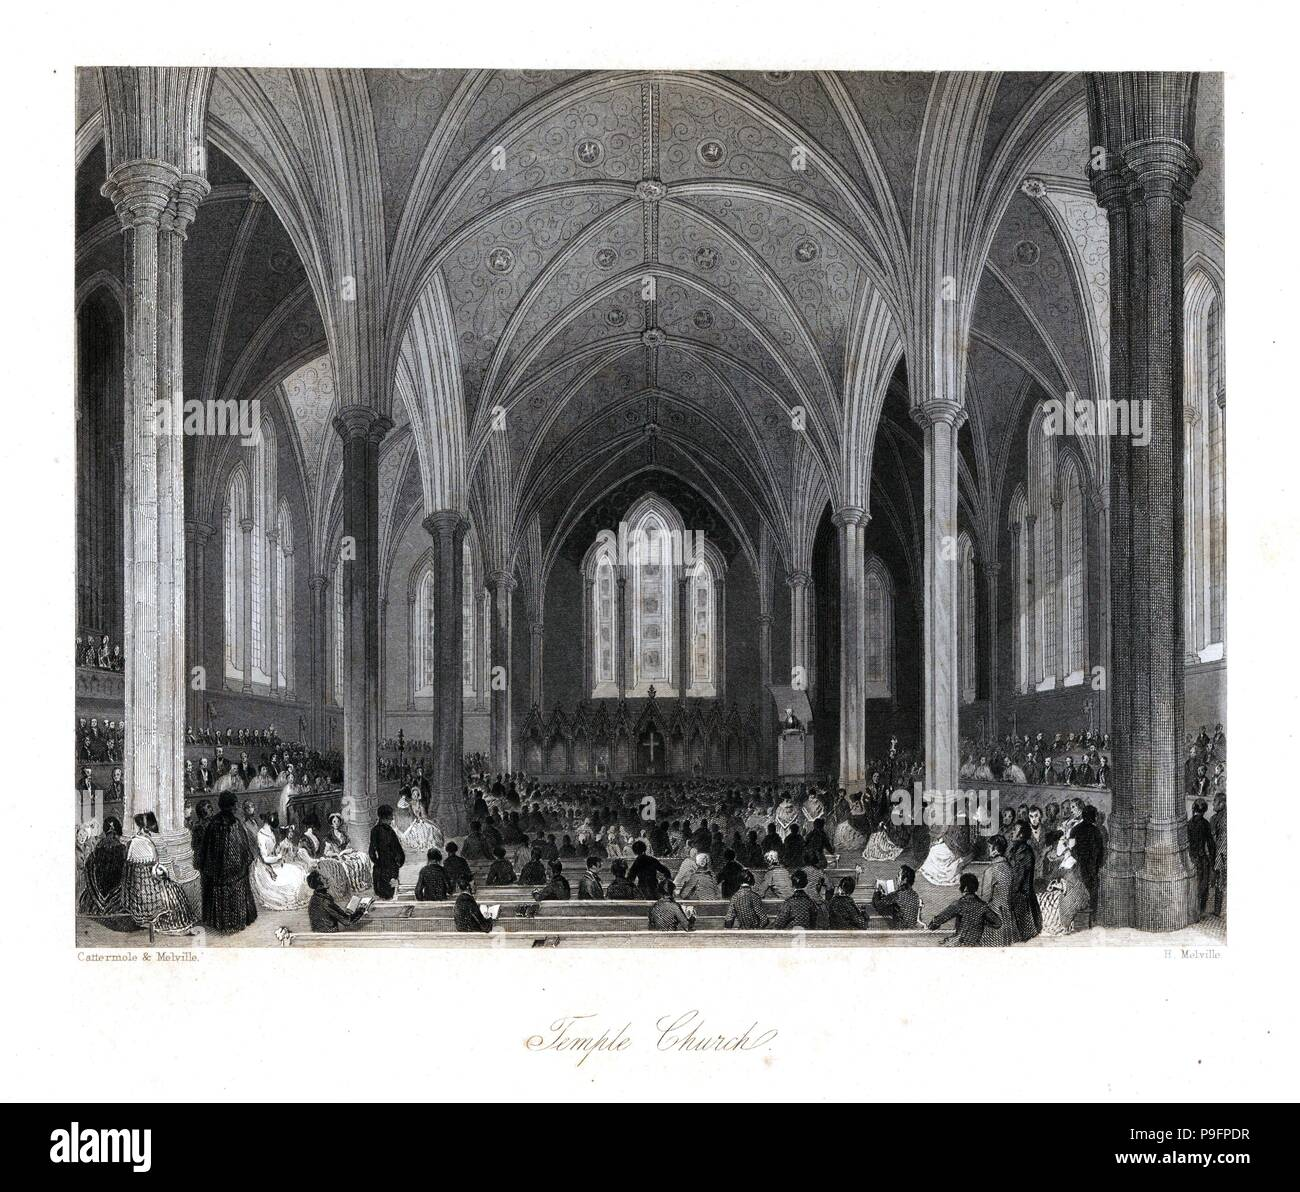 Vaulted ceiling and stained-glass windows in Temple Church. Steel engraving by Henry Melville after an illustration by George Cattermole and Henry Melville from London Interiors, Their Costumes and Ceremonies, Joshua Mead, London, 1841. - Stock Image